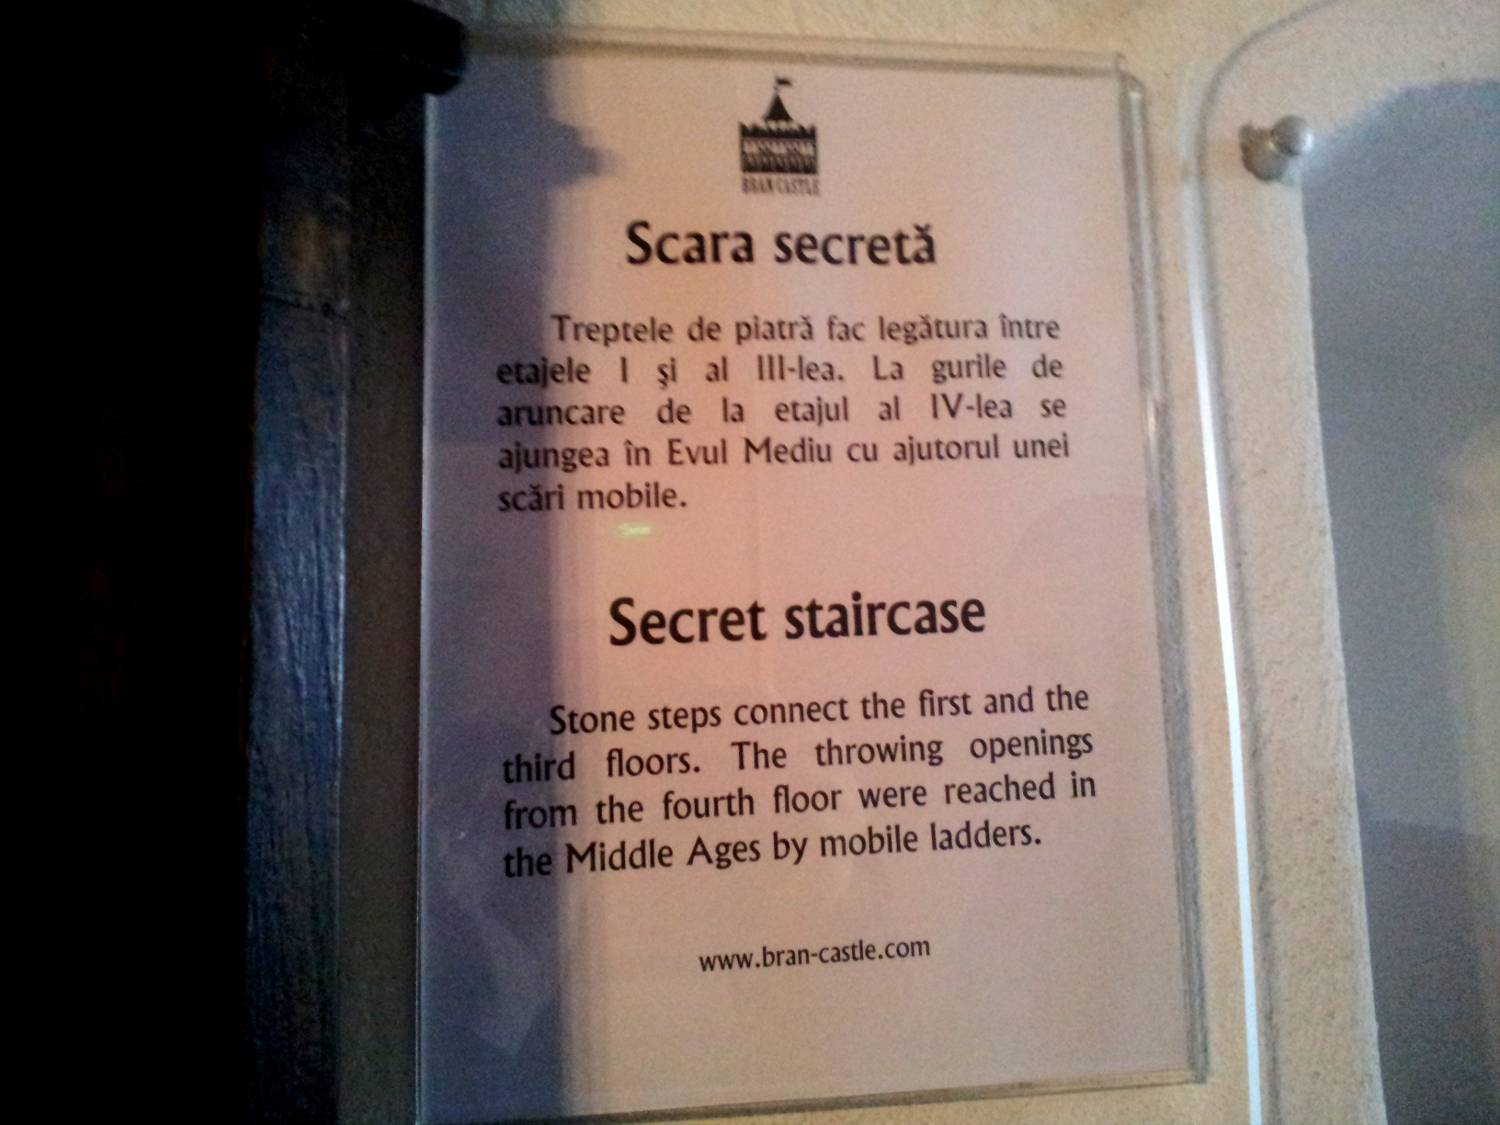 Bran Castle - secret staircase - explanation